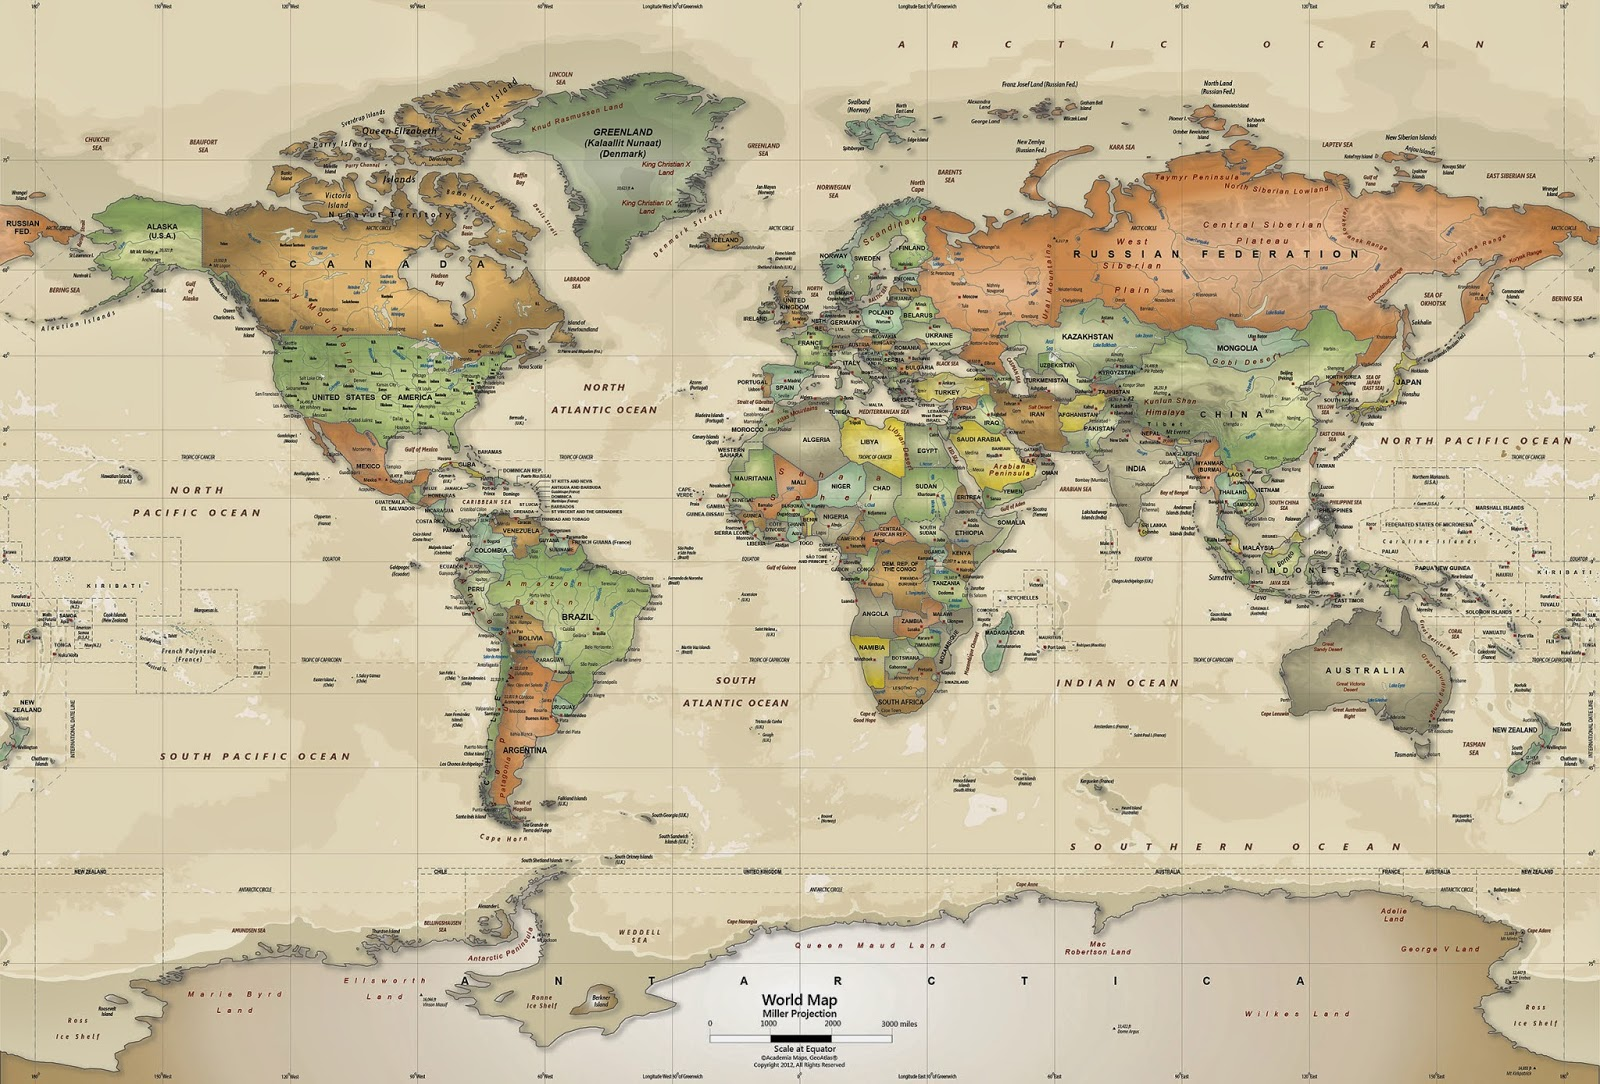 Caribbean map wallpaper for walls 183 best images about vintage nautical charts on pinterest gumiabroncs Gallery